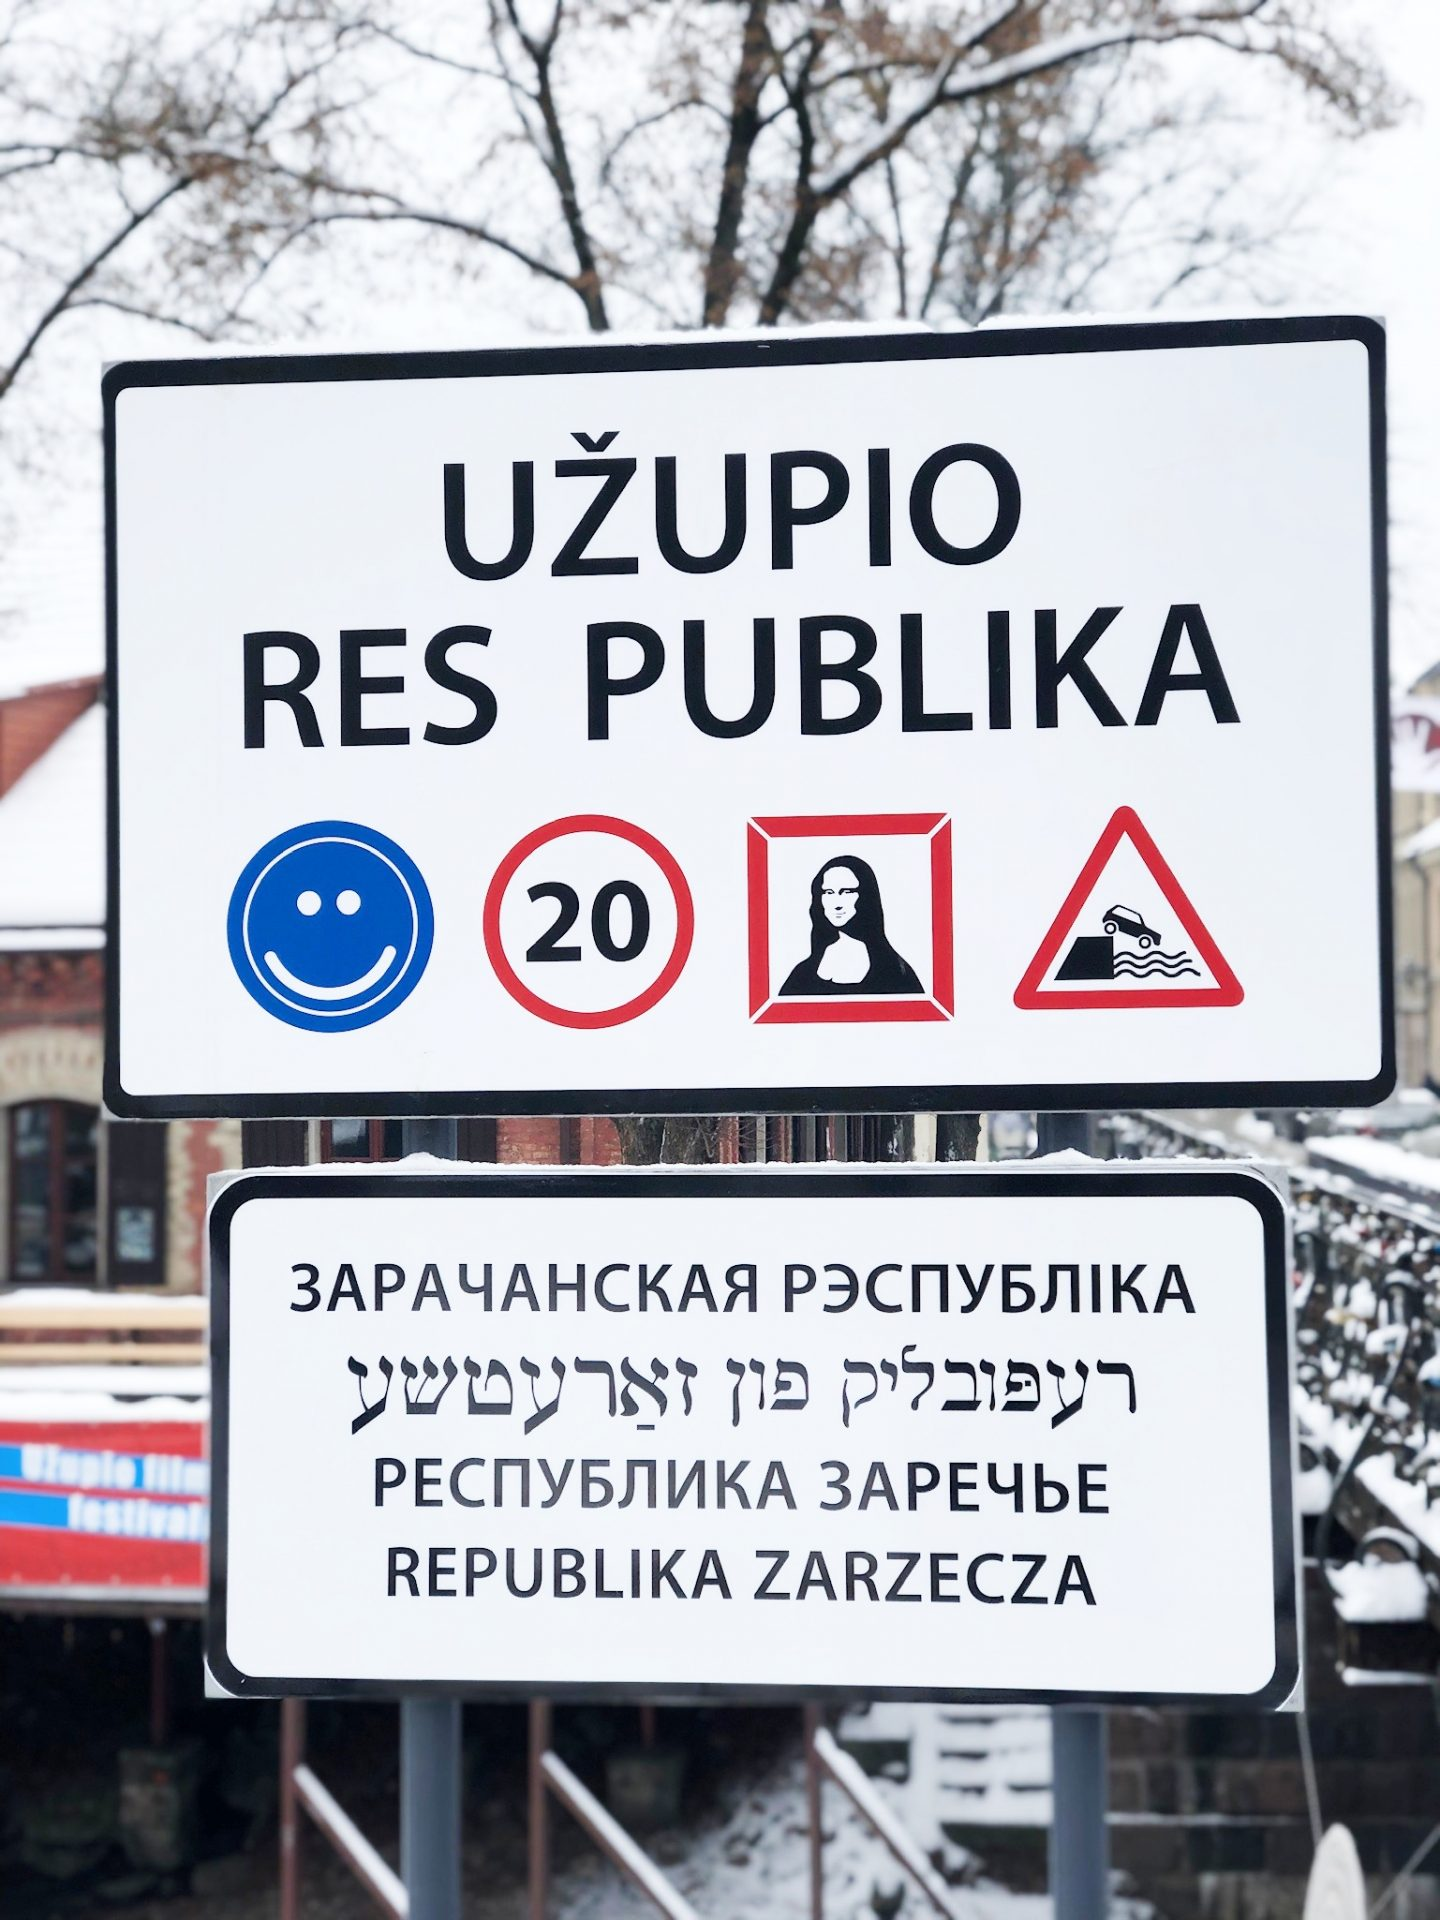 A sign showing Uzupio Res Publica with icons below it featuring a smiley face, a 20 miles per hour warning an a picture of the mona lisa.